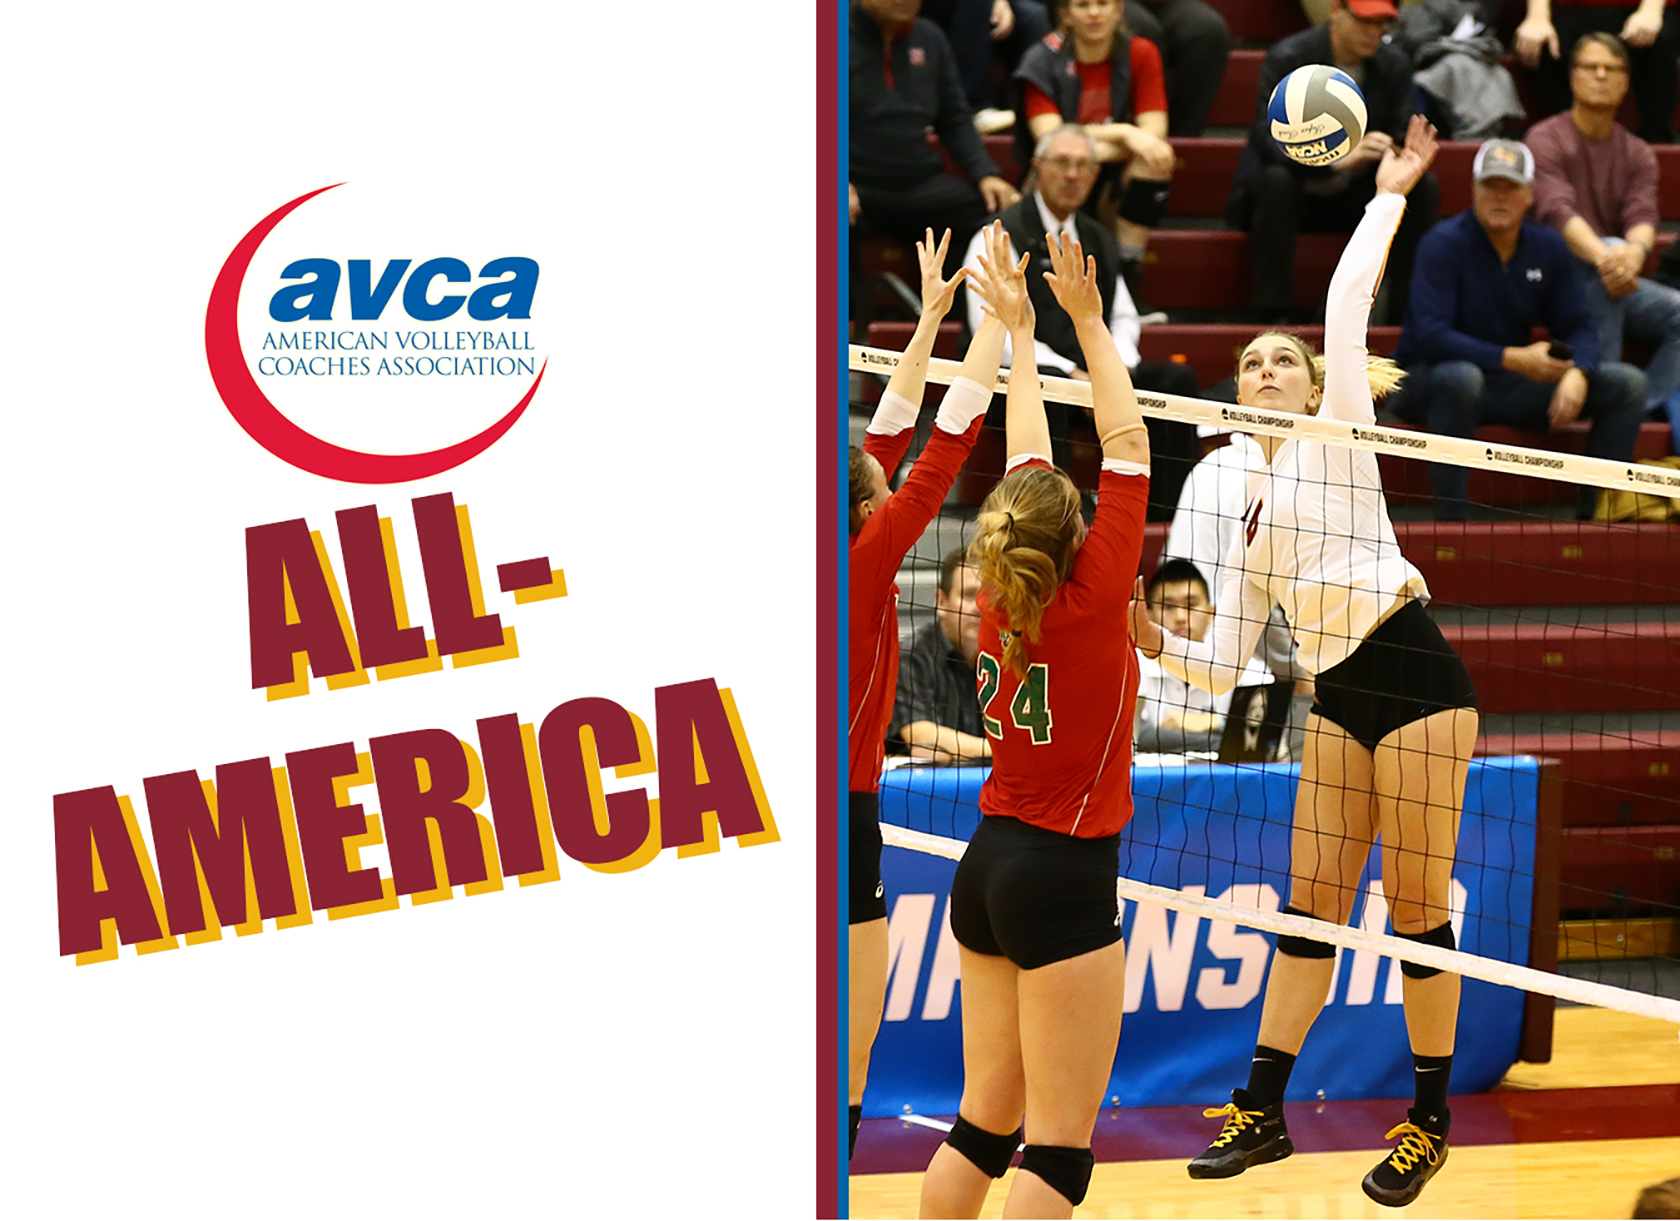 A logo saying 'AVCA All-America' and picture of a young white woman spiking a volleyball during a game.